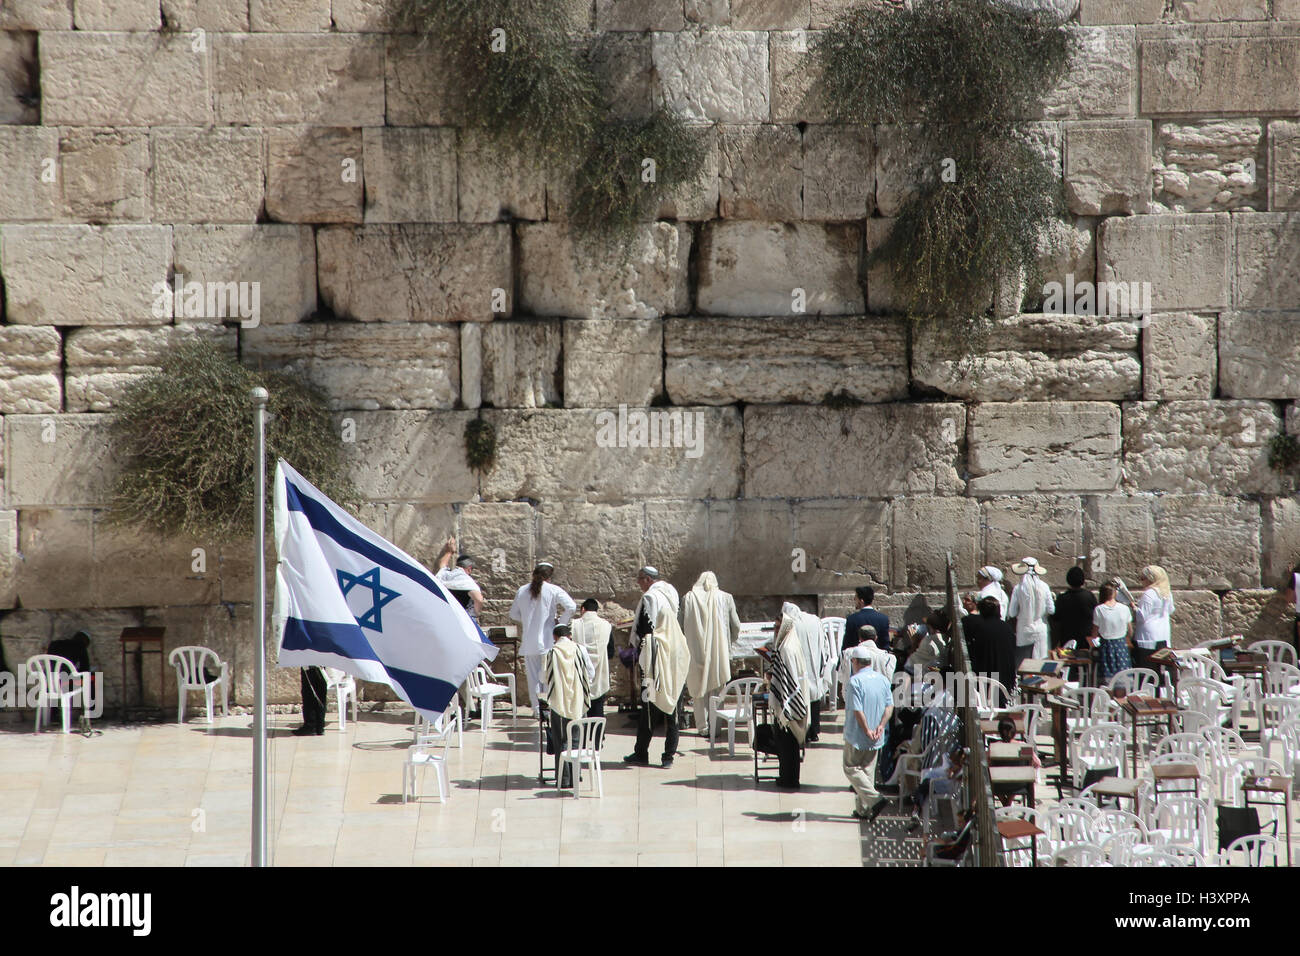 A view of the western wall, also known as the wailing wall, in the old city of Jerusalem. From a series of photos - Stock Image